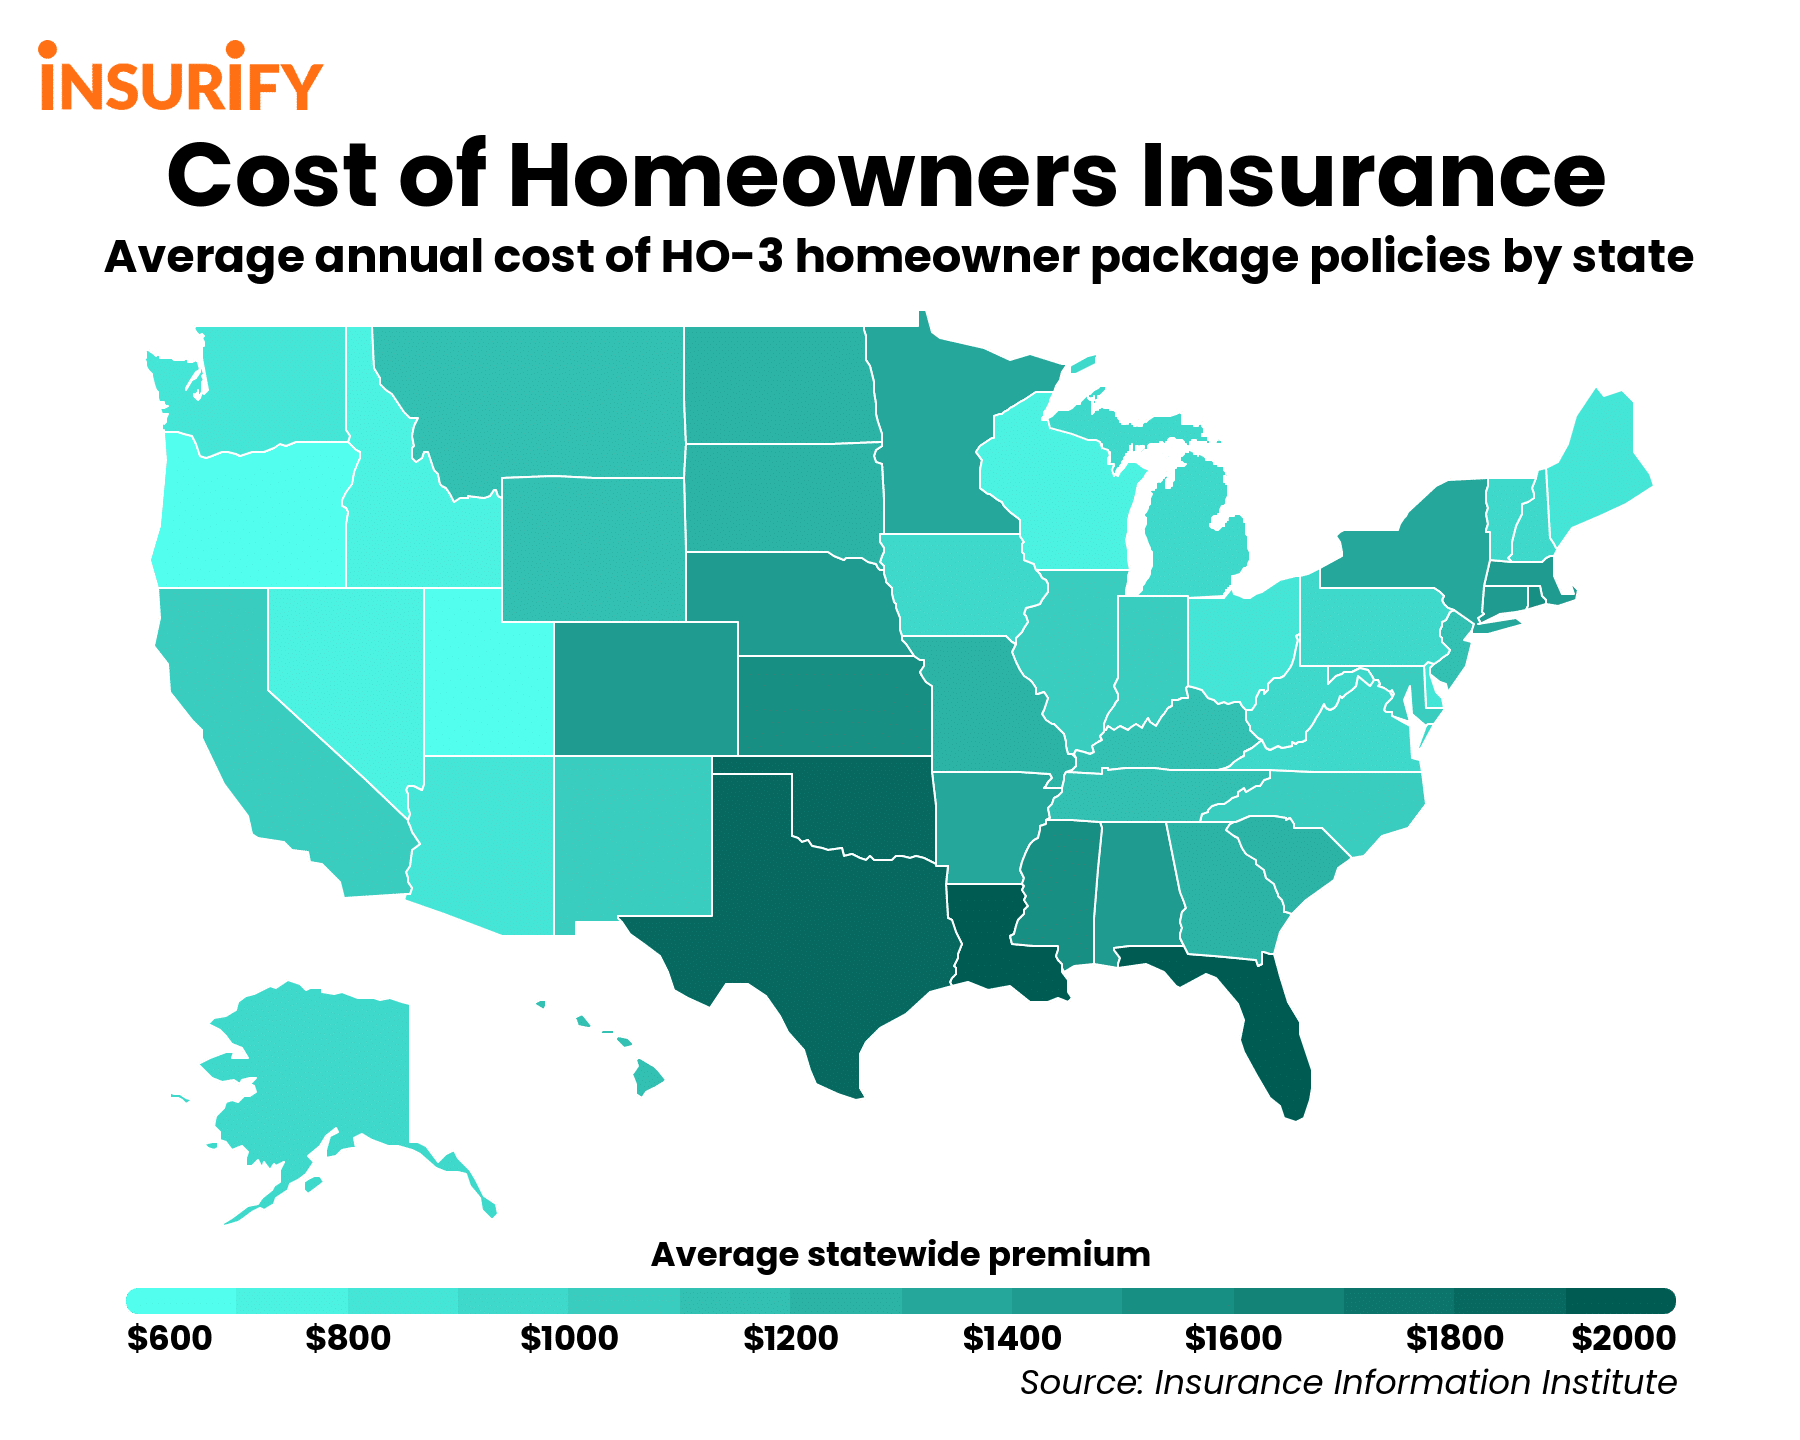 Heat map of the average cost of homeowners insurance by state.